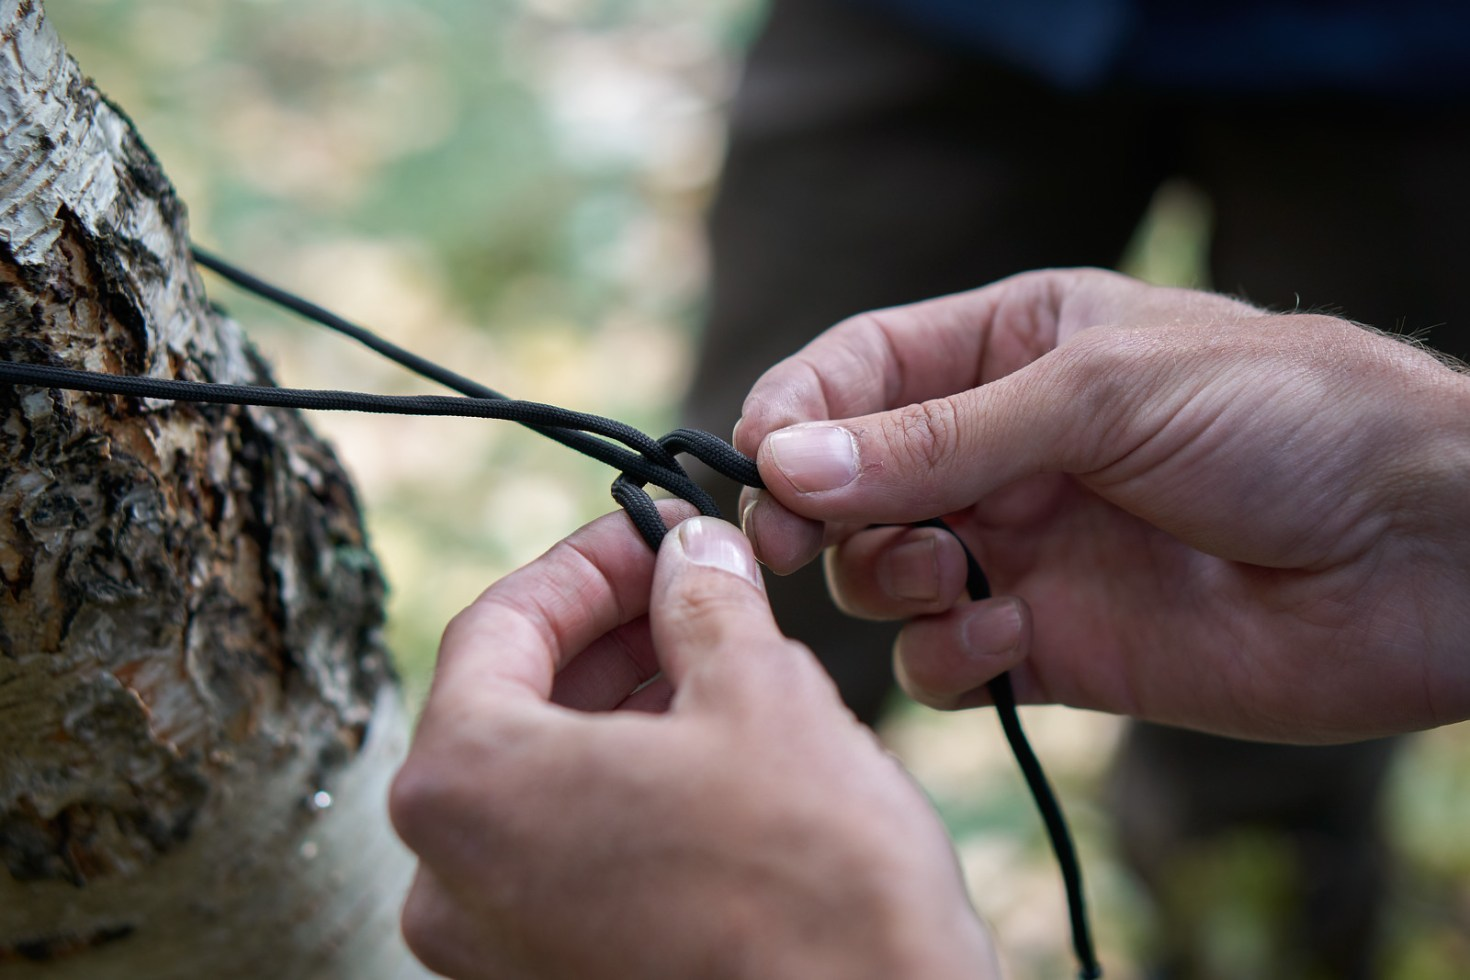 Teaching the knot